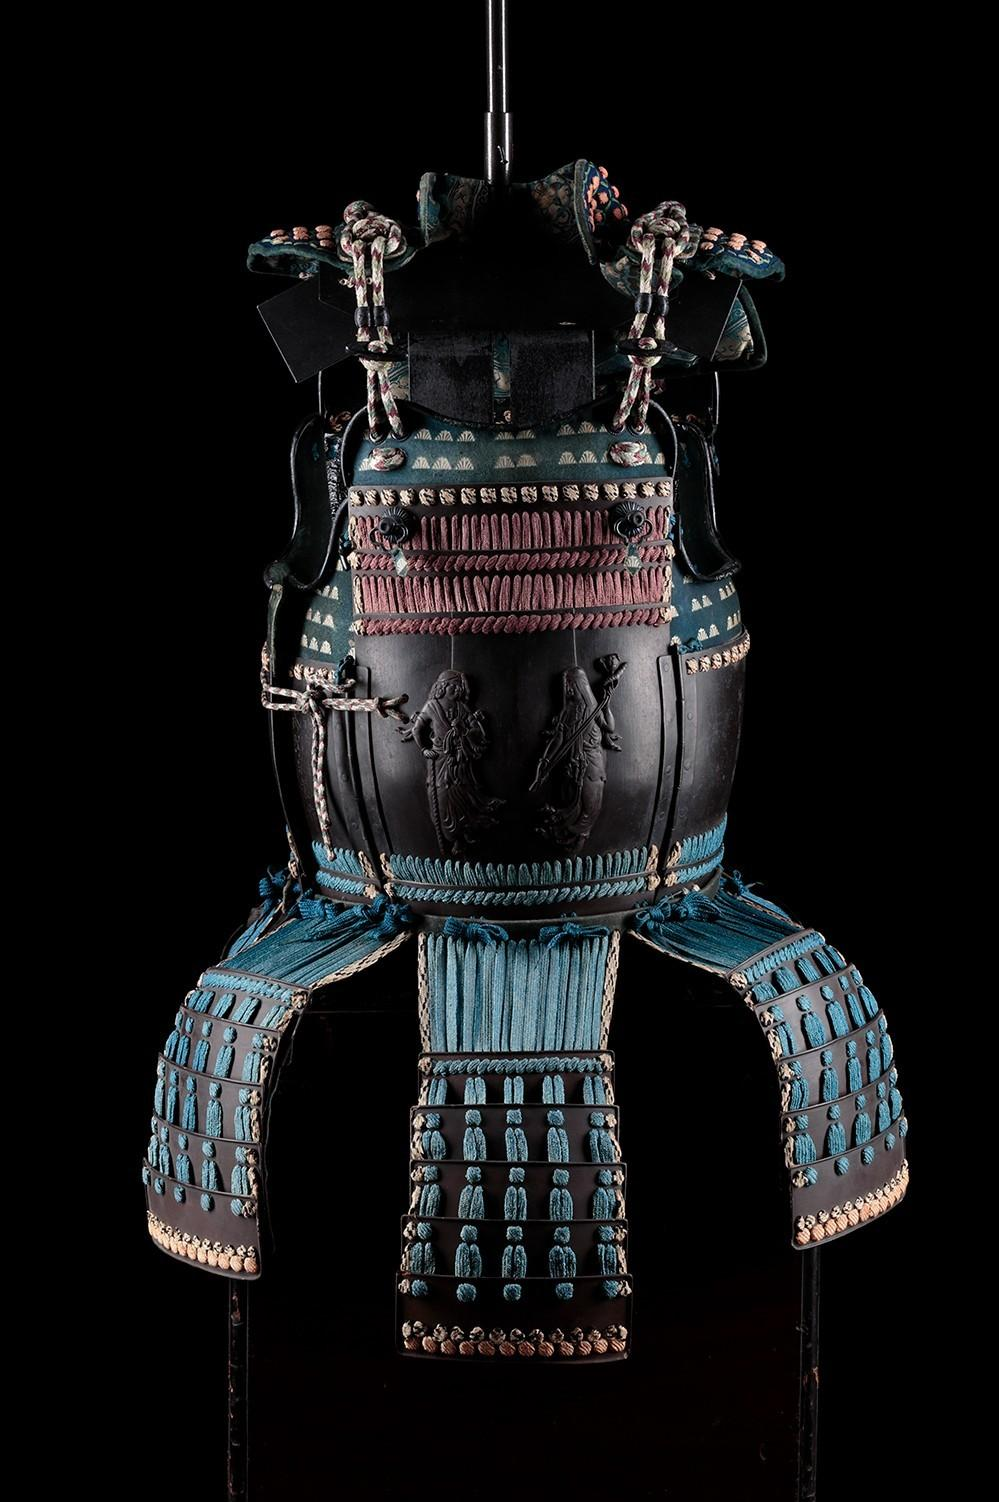 Tosei Gusoku, Armor breastplate. Lacquered steel, silk, brass, yak hair, alloys of copper, leather. Japan, Edo Period (1603-1868). Signed Myōchin Munichika.